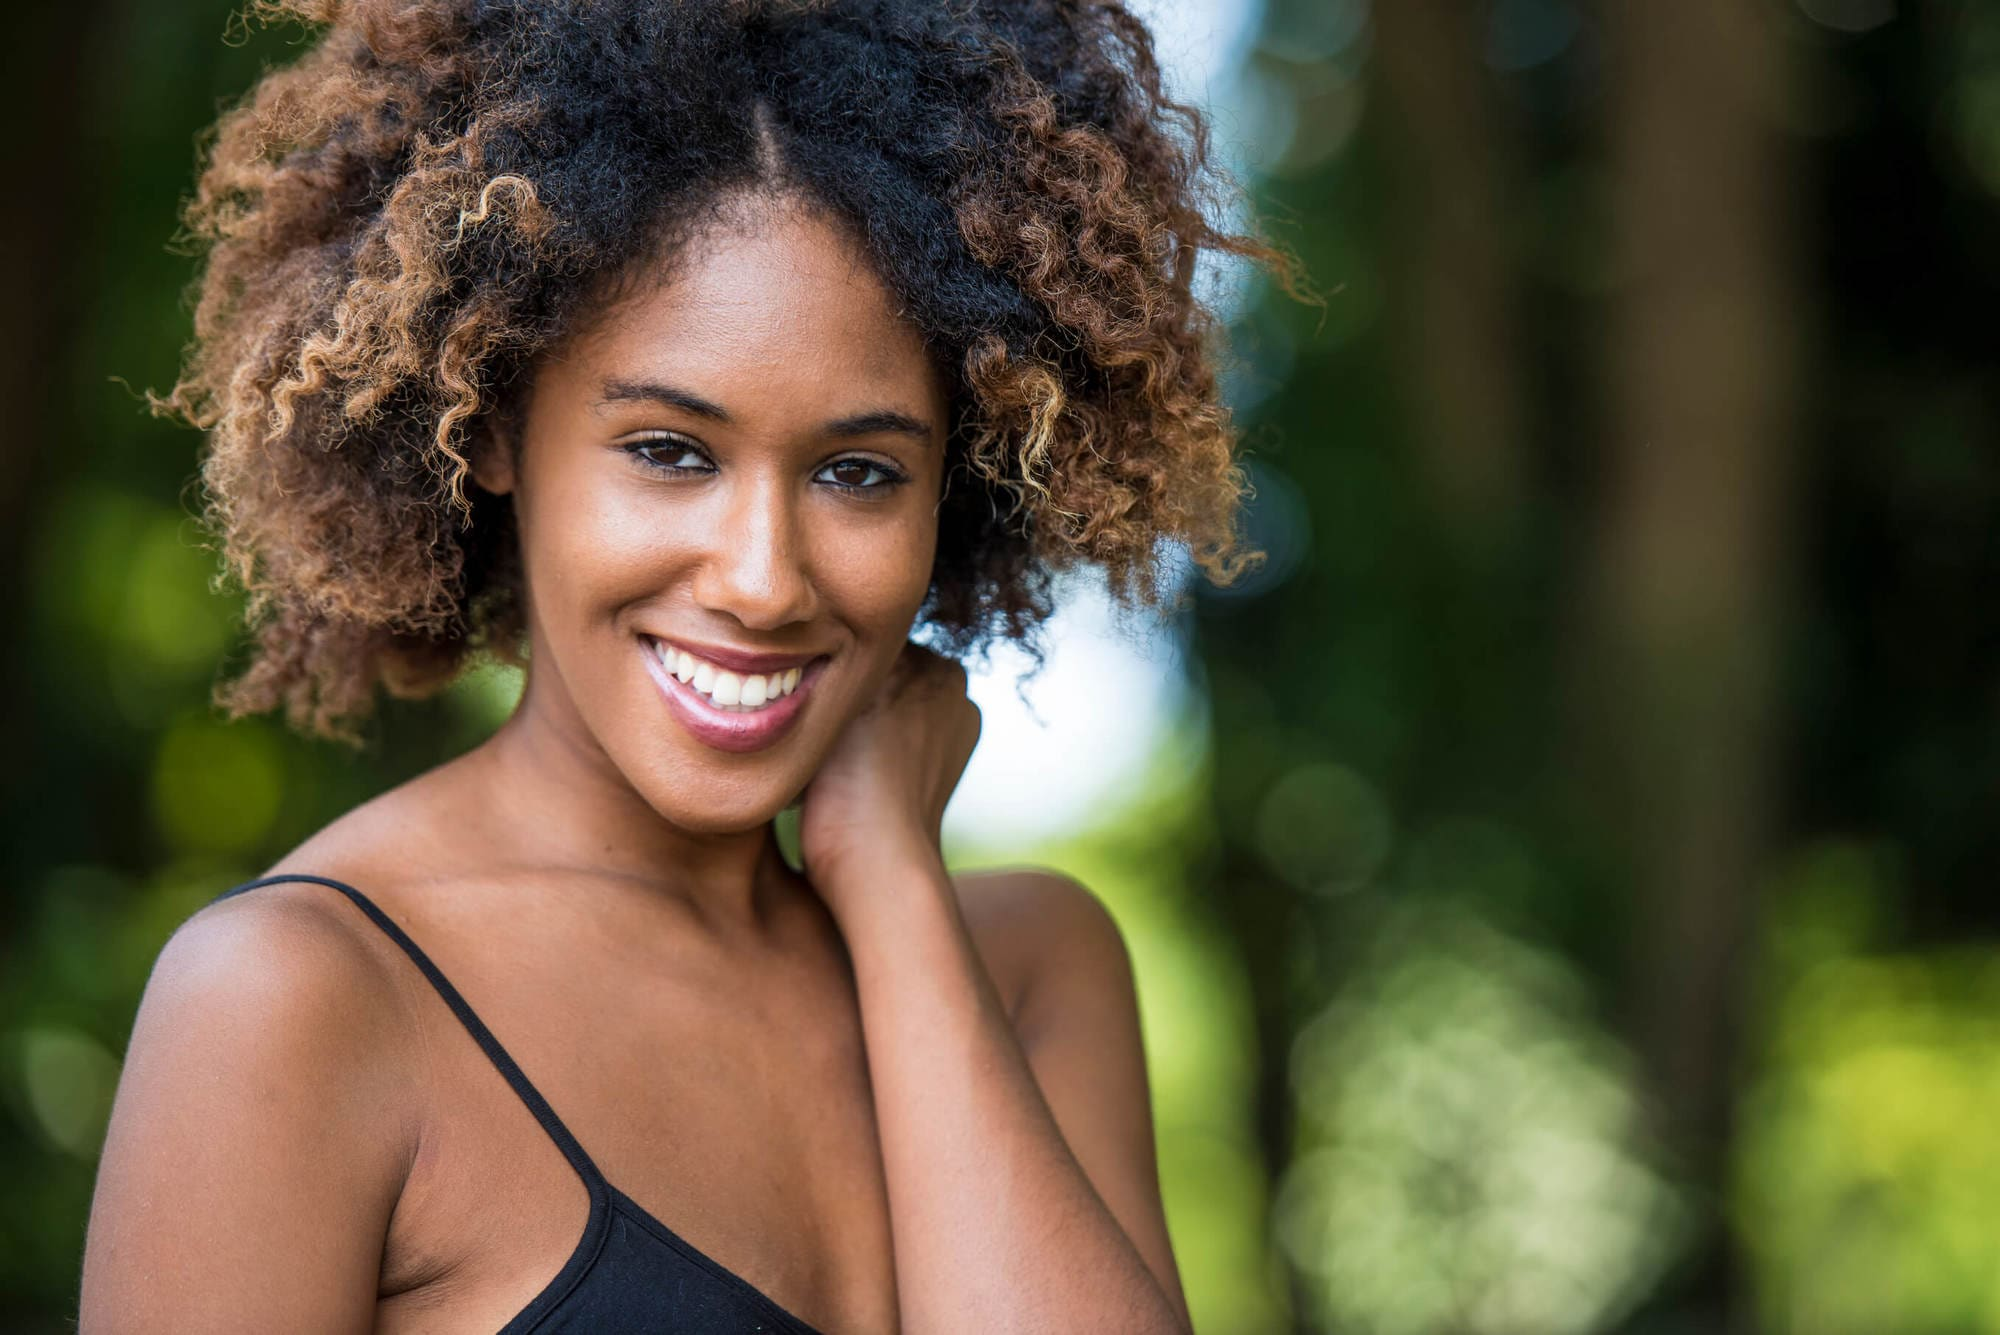 Best hairstyles for your hair type include natural hairstyles like the afro